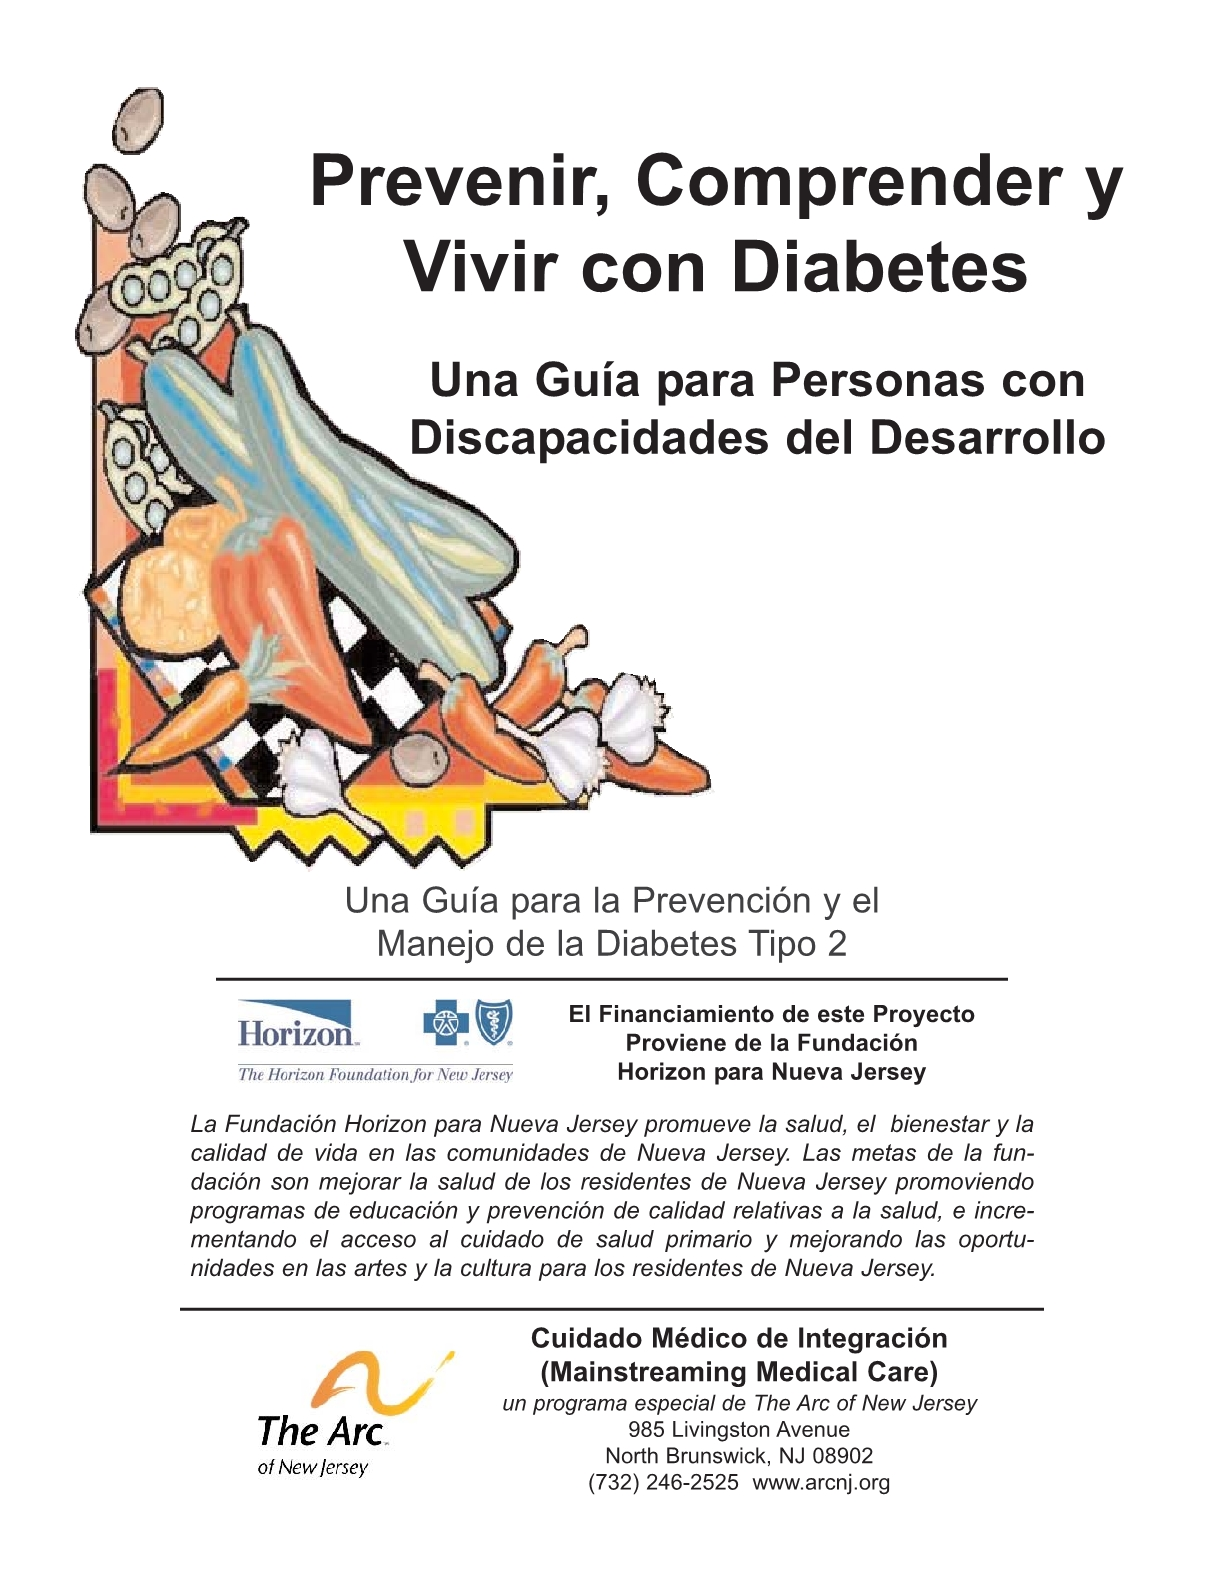 Prevent, Understand, and Live with Diabetes_A Guide for Individuals with Developmental Disabilities - Spanish